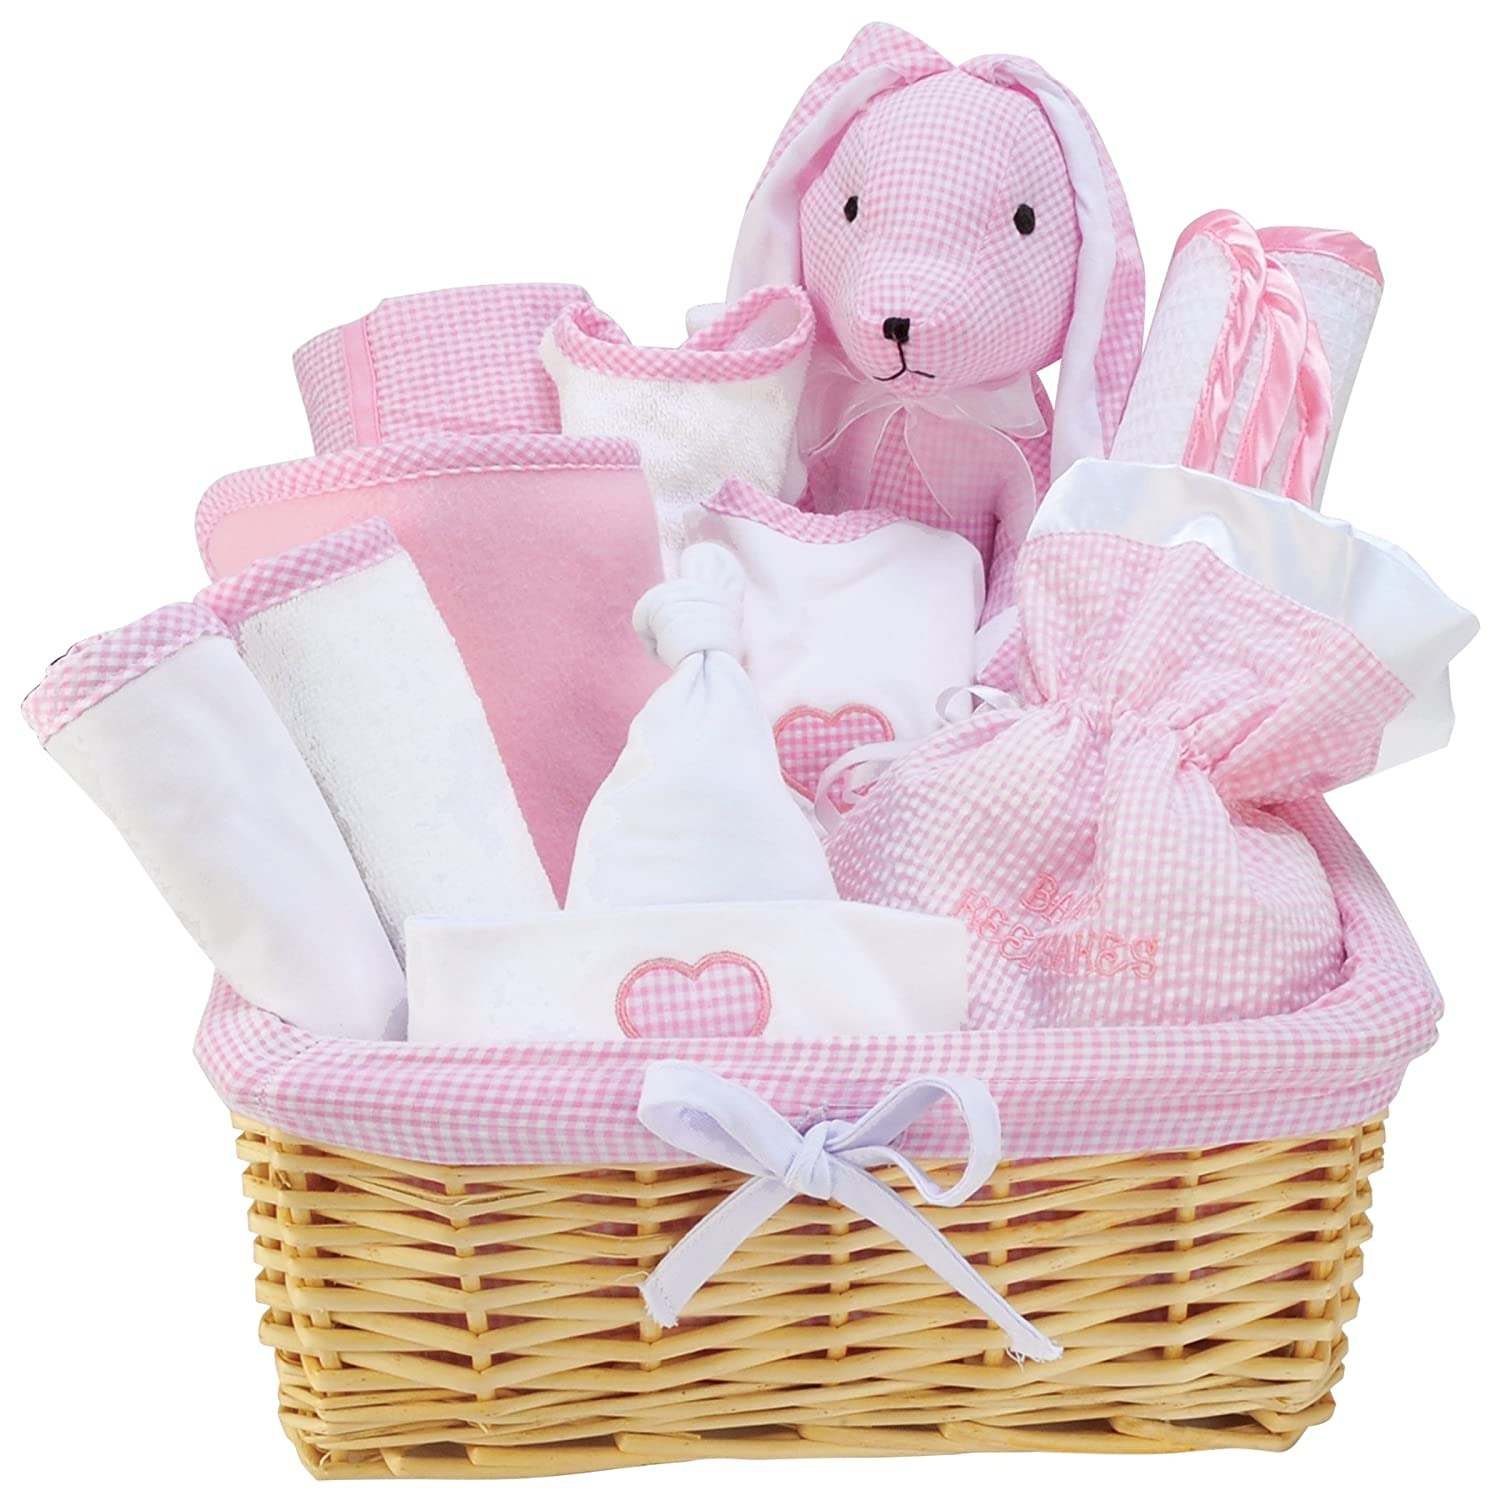 Trend Lab Deluxe 12 Piece Gift Basket Set in Pink 101189